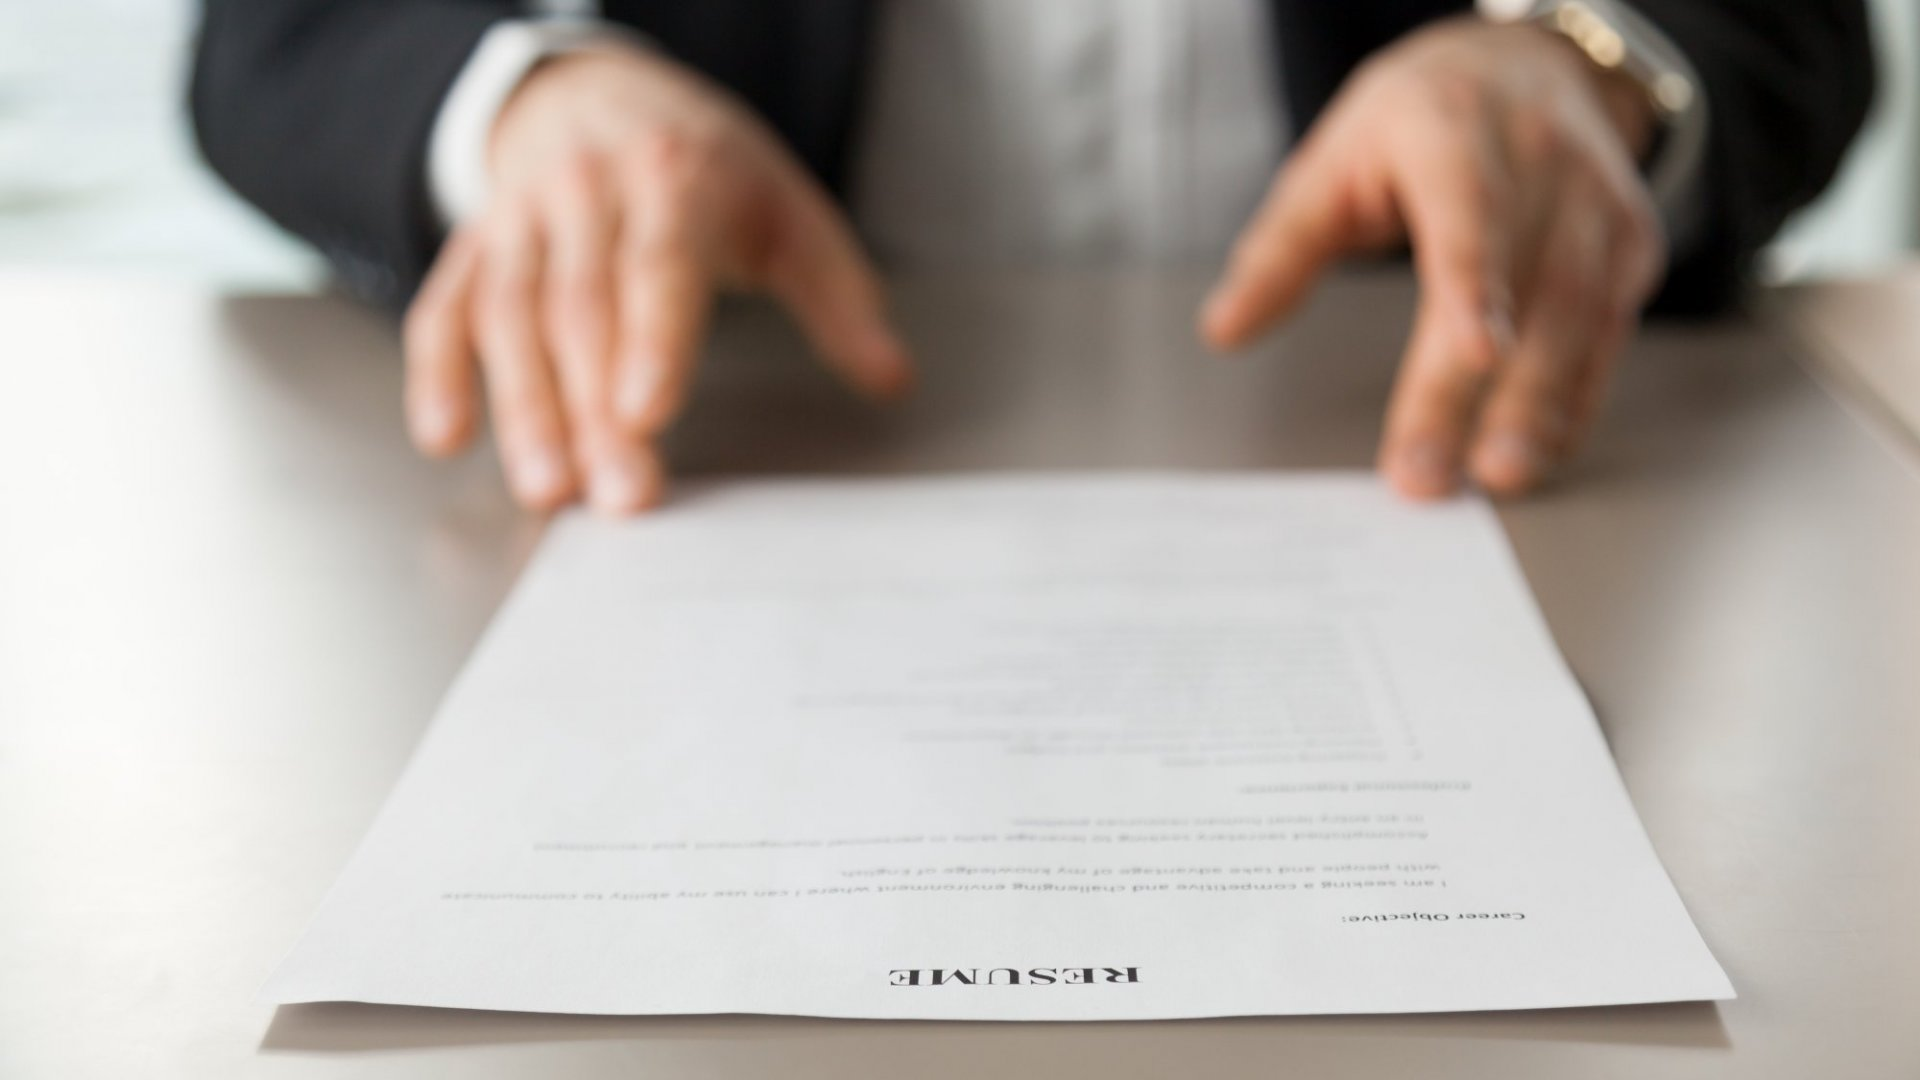 According to Hiring Managers, 1 Type of Resume Makes You Look Desperate